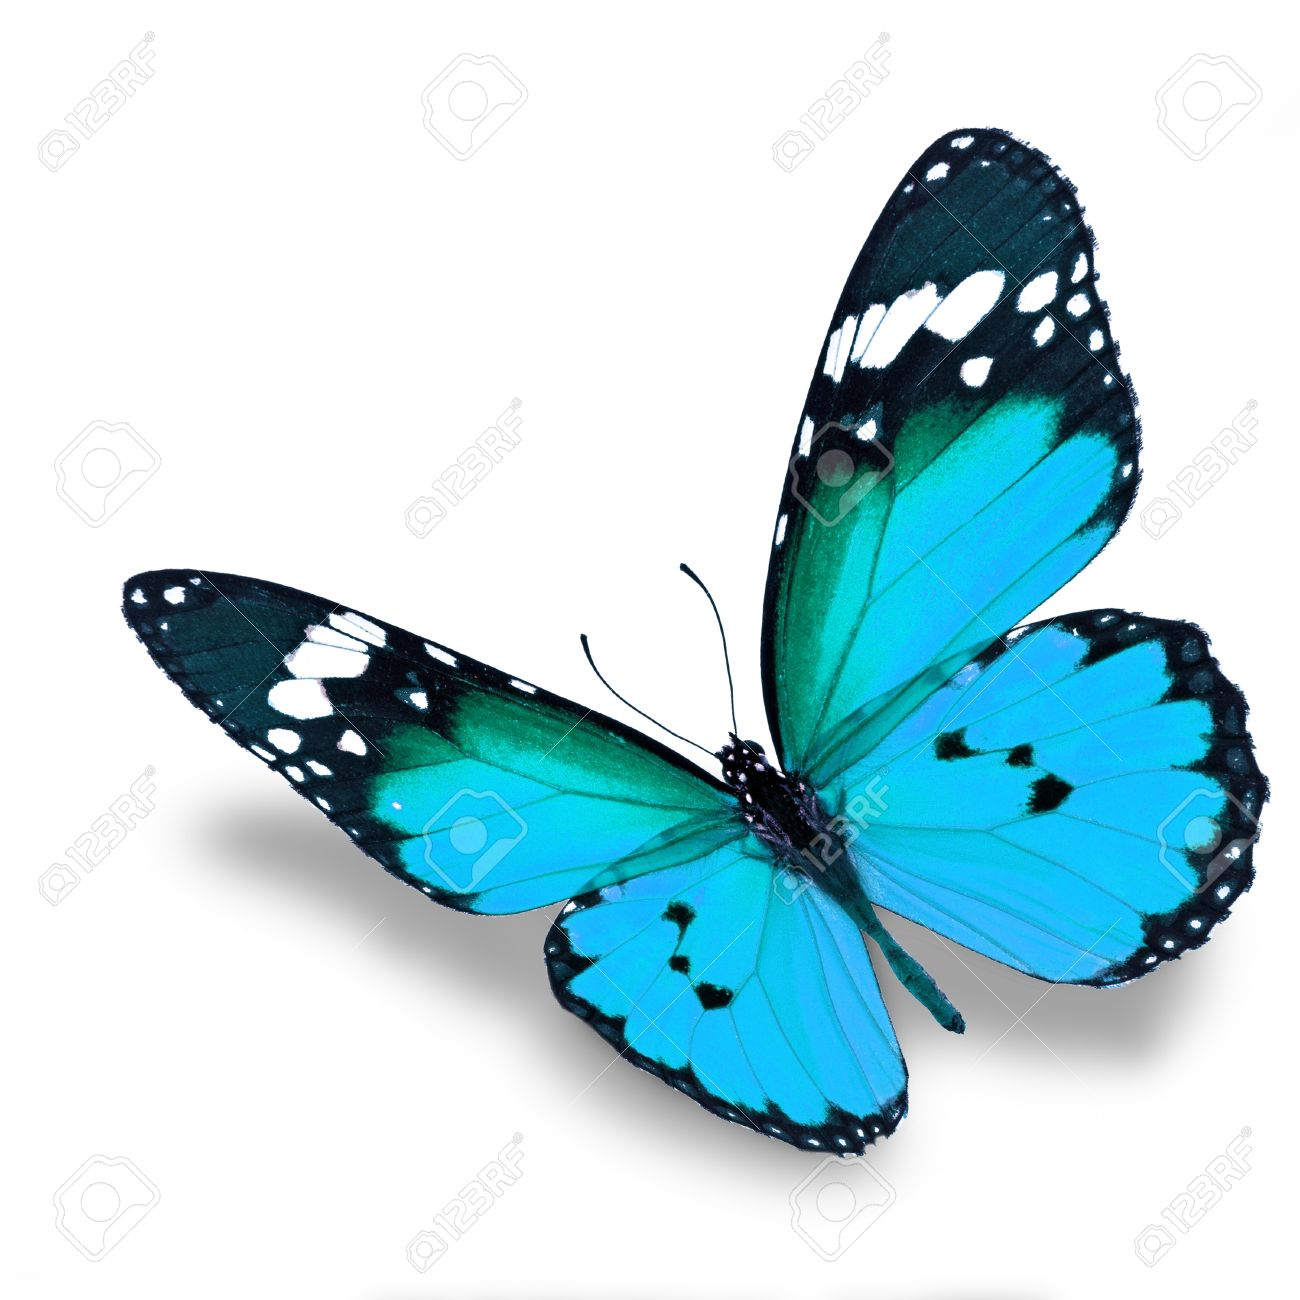 Beautiful blue butterfly flying isolated on white background - 33943823